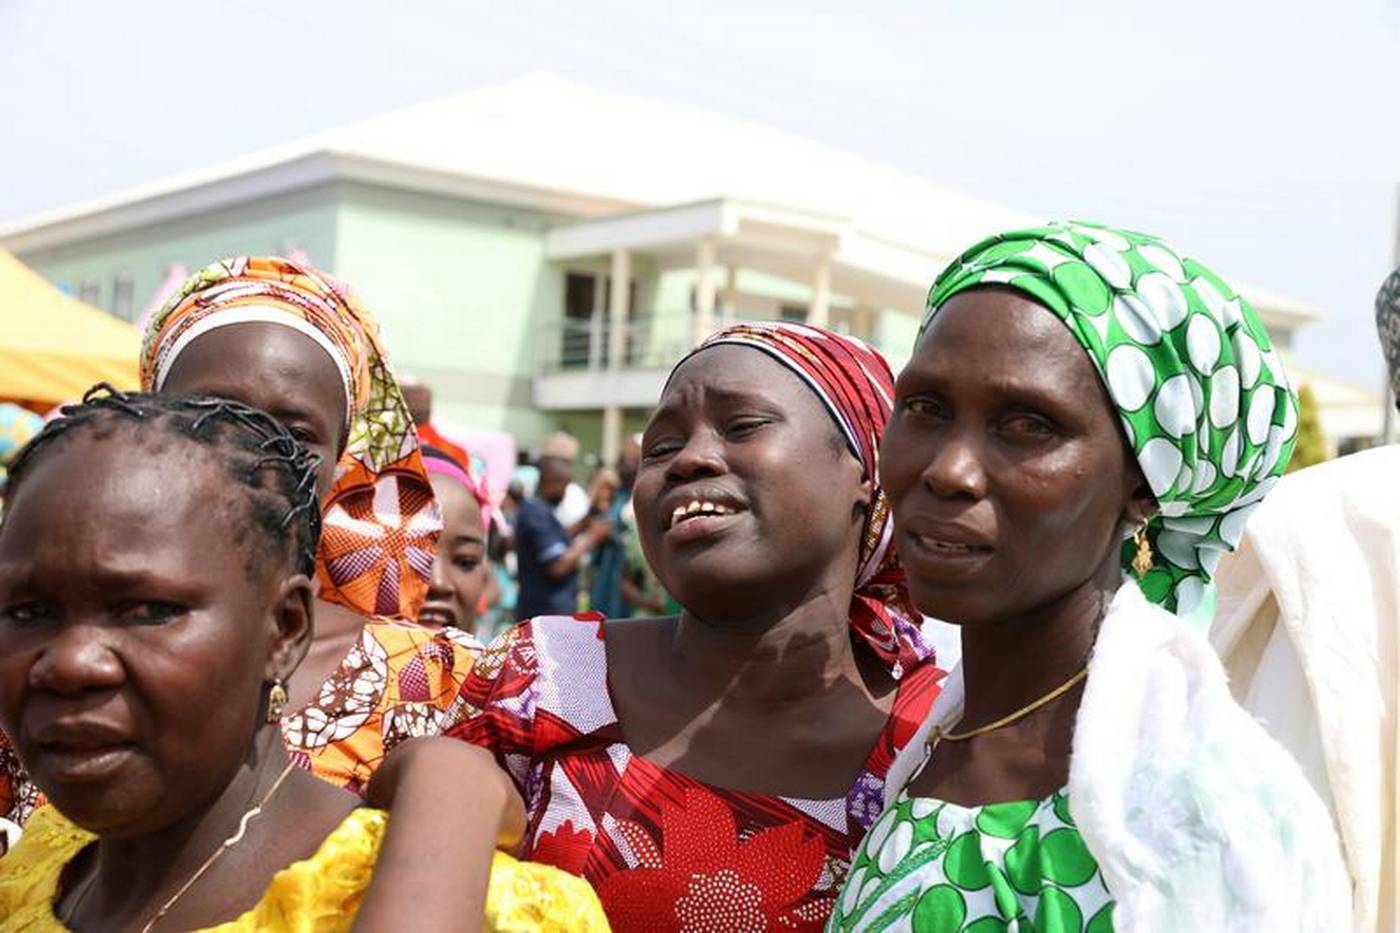 Tears flow as escaped Chibok captive brings news - good and bad